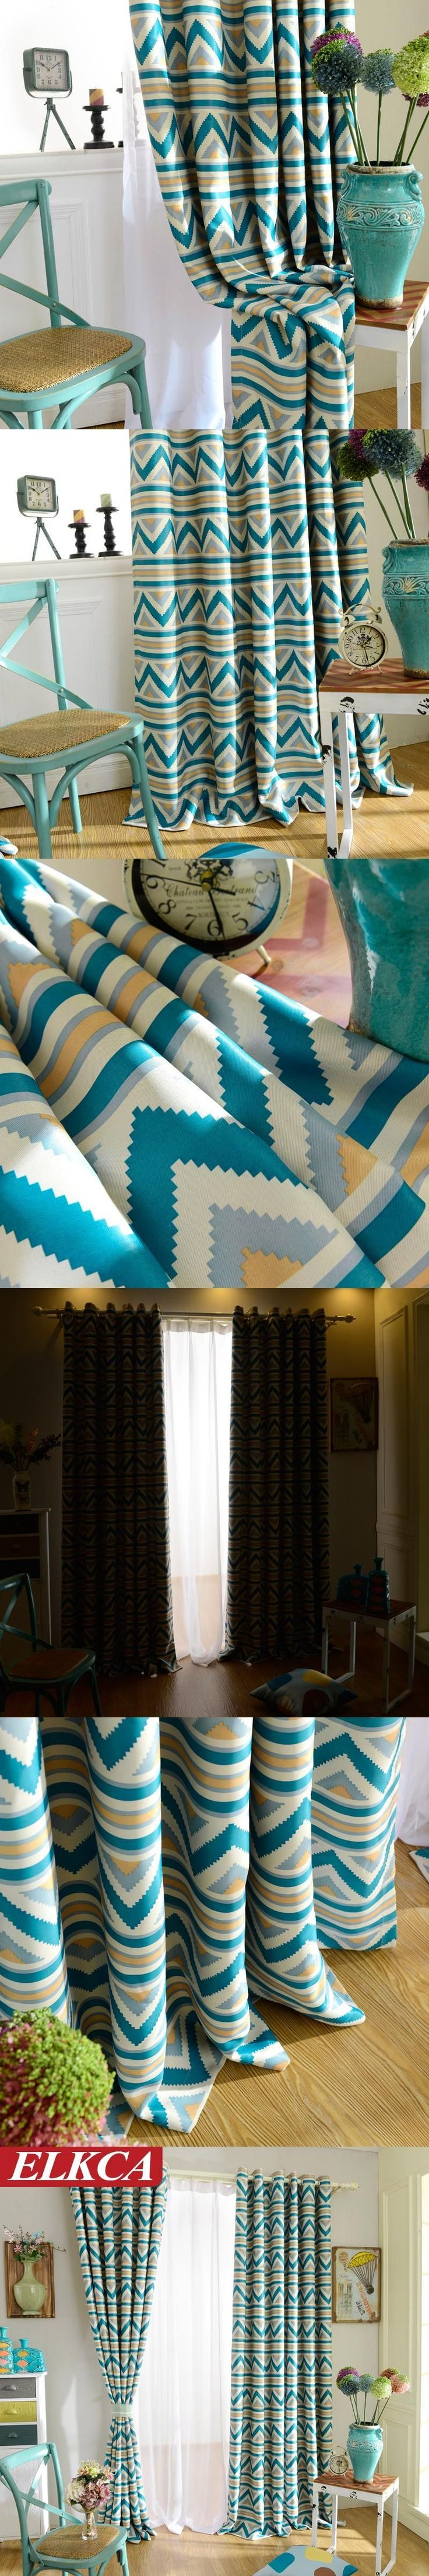 Blue Stripe Geometric Curtains for Living Room Drapes Modern kitchen Curtains Custom Made Blackout Curtains for Bedroom Blinds